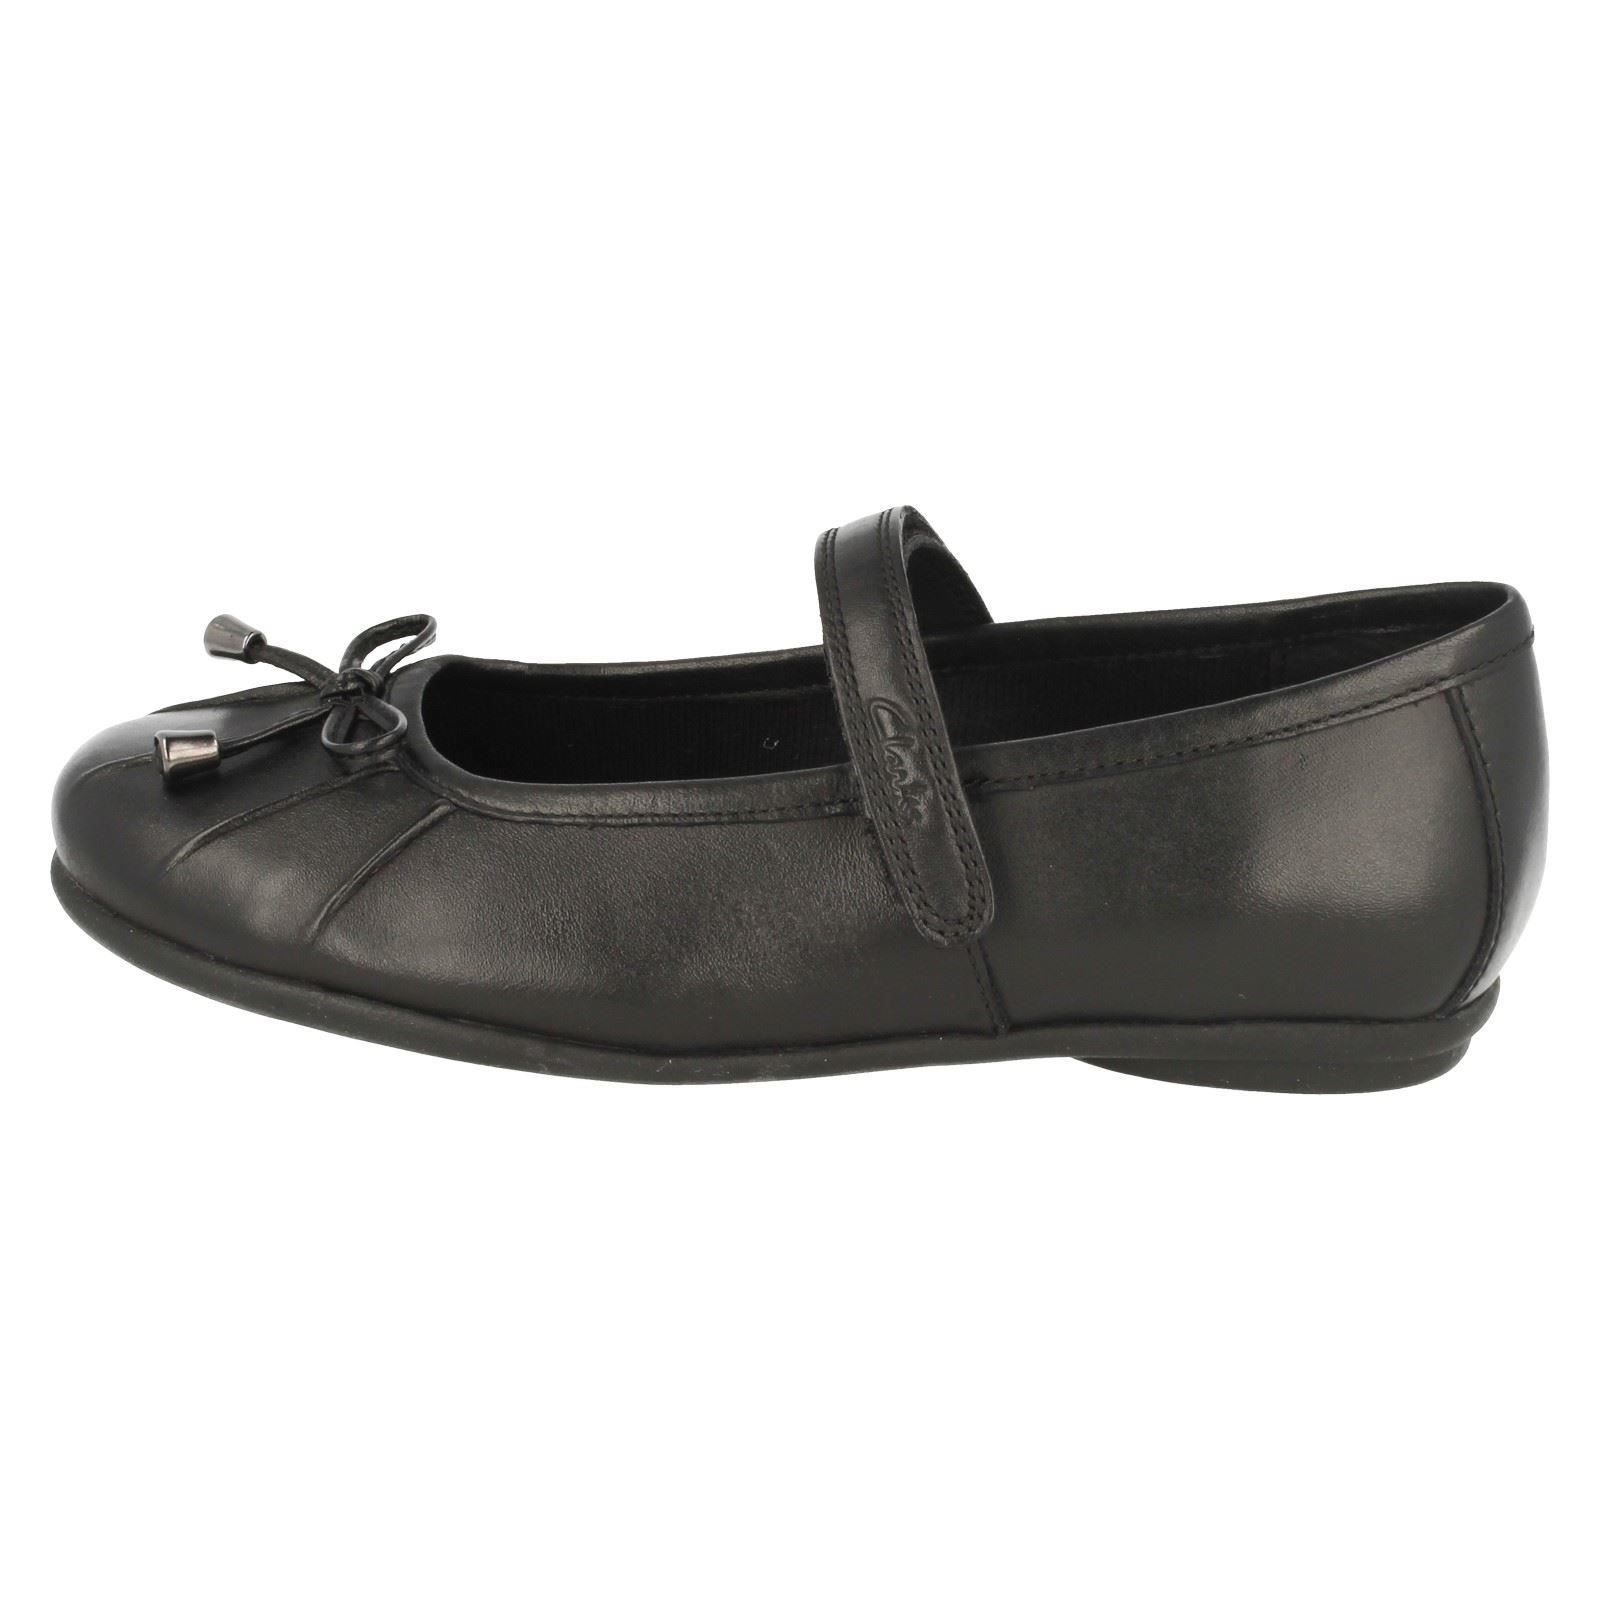 clarks school shoes with bow design abby